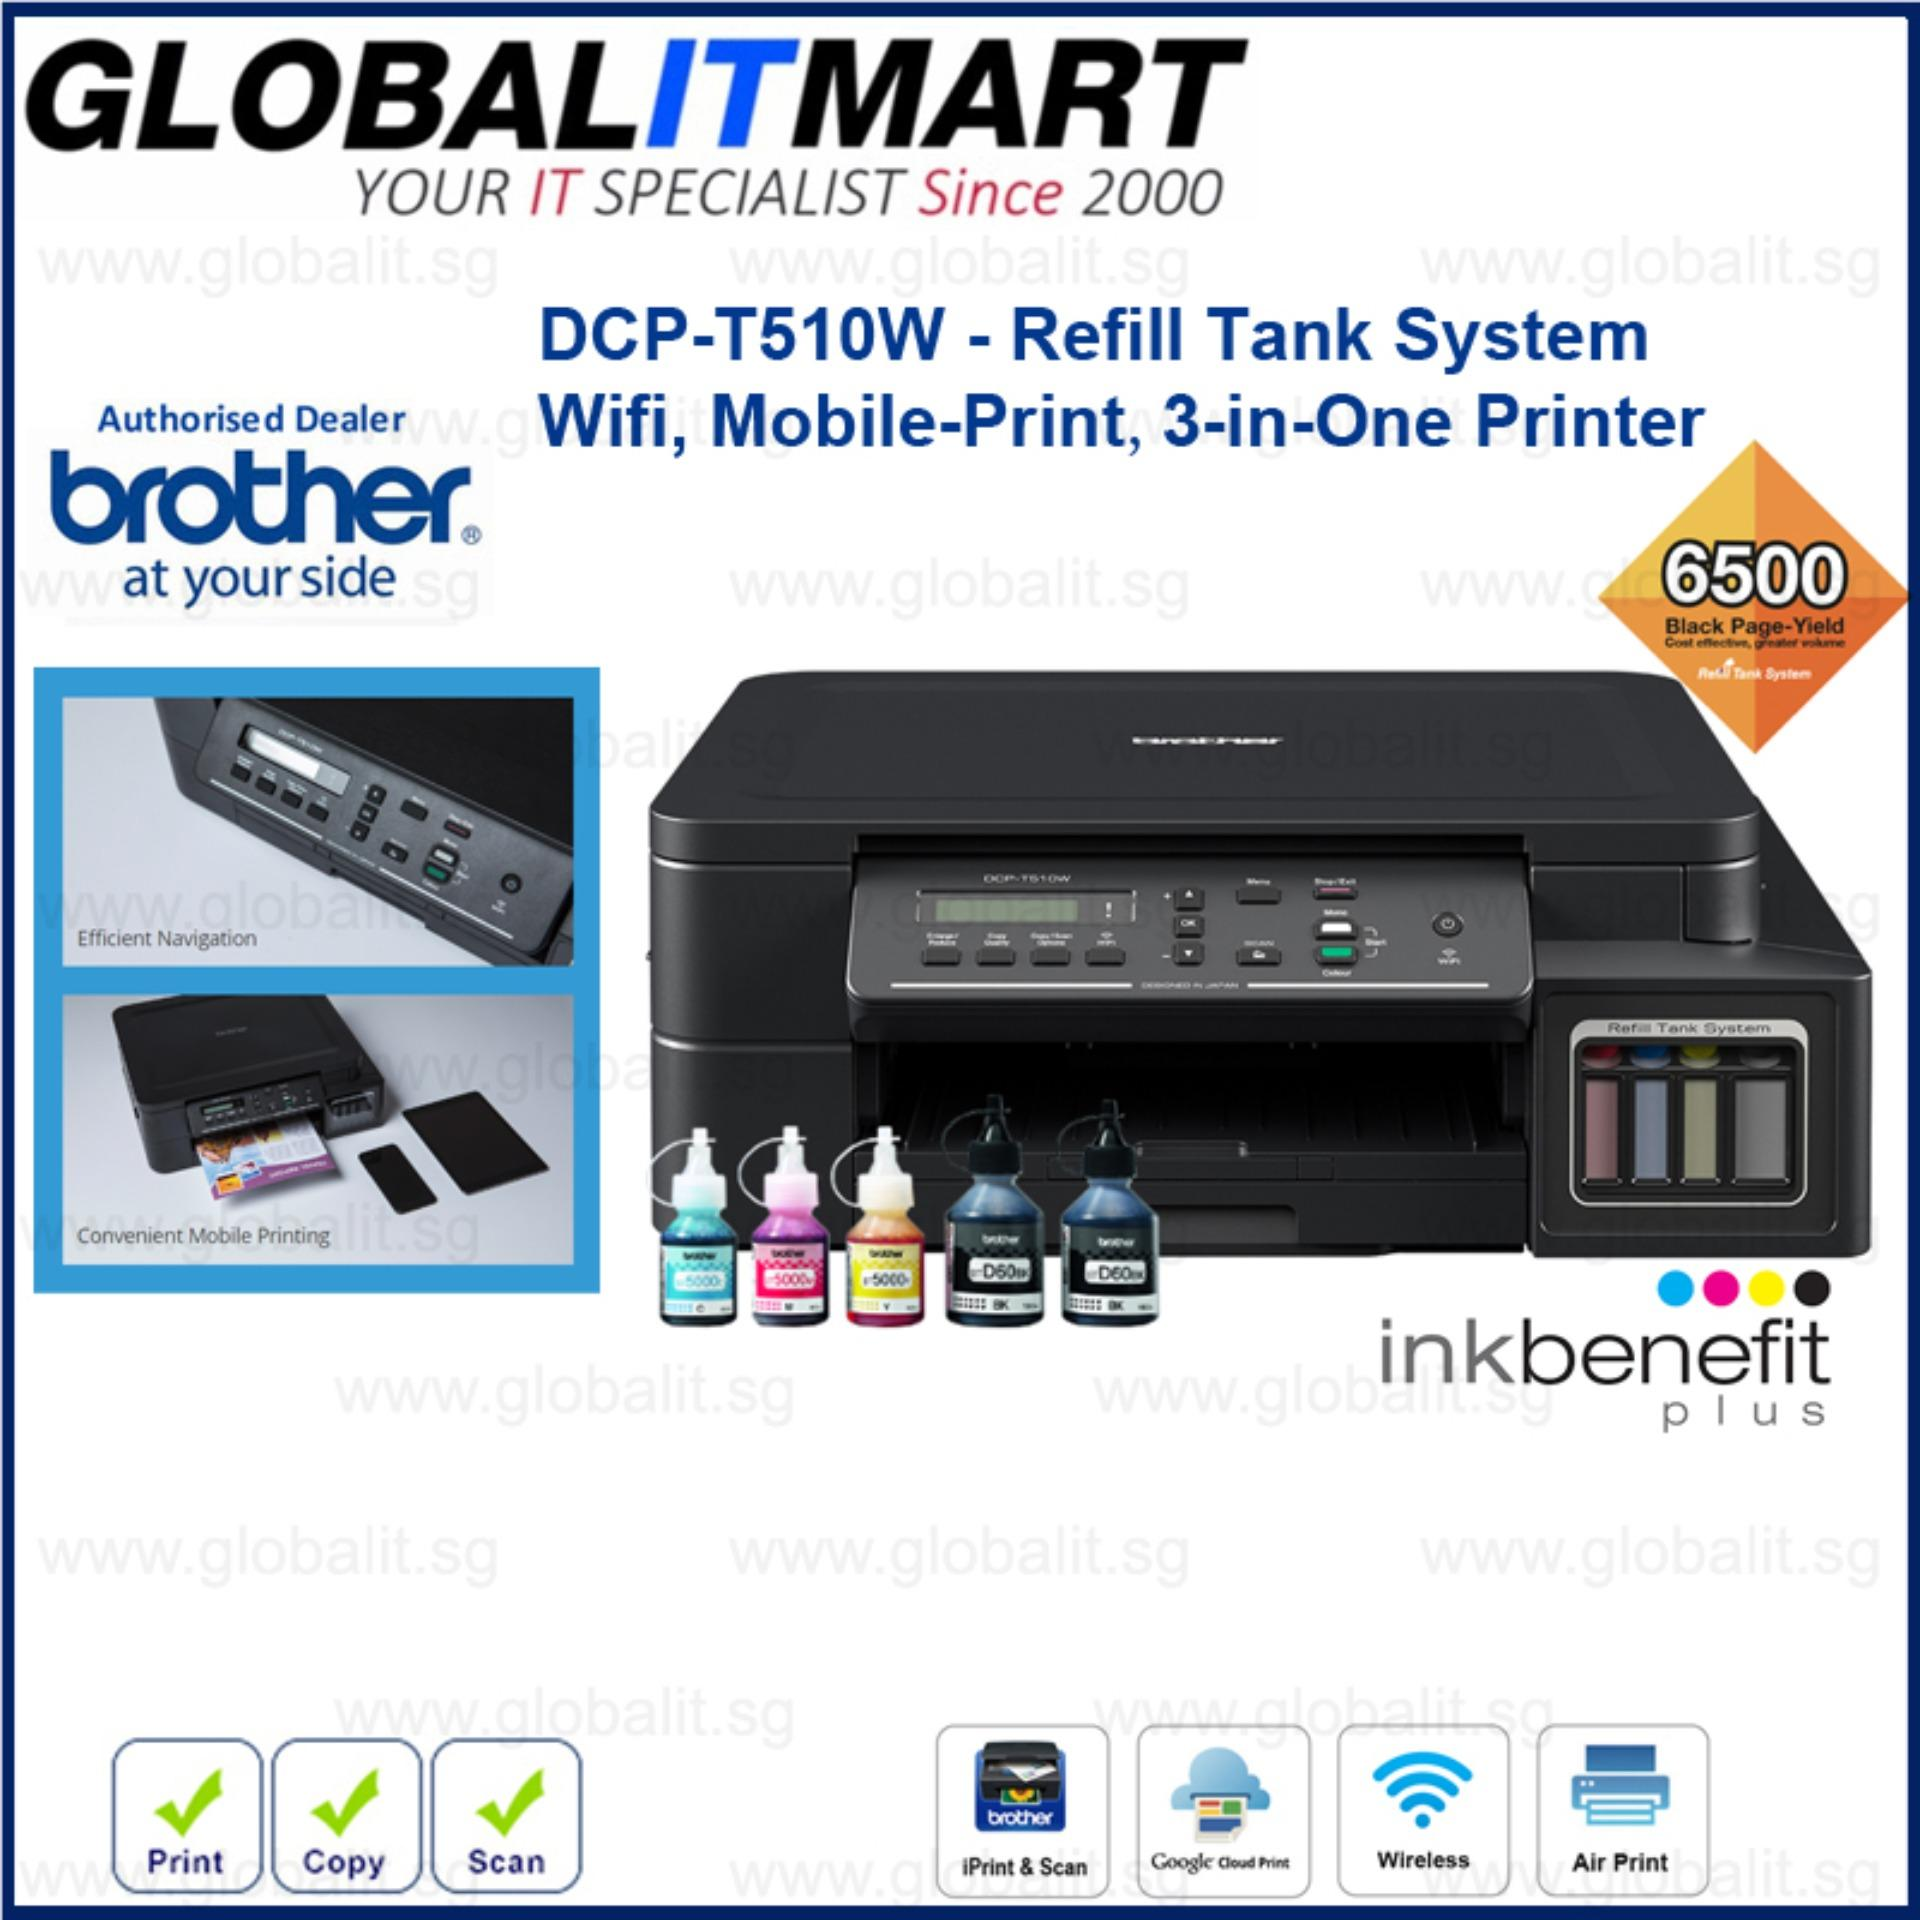 Brother DCP-T510W Refill Tank System – Wifi, Mobile-Print 3-in-One Singapore